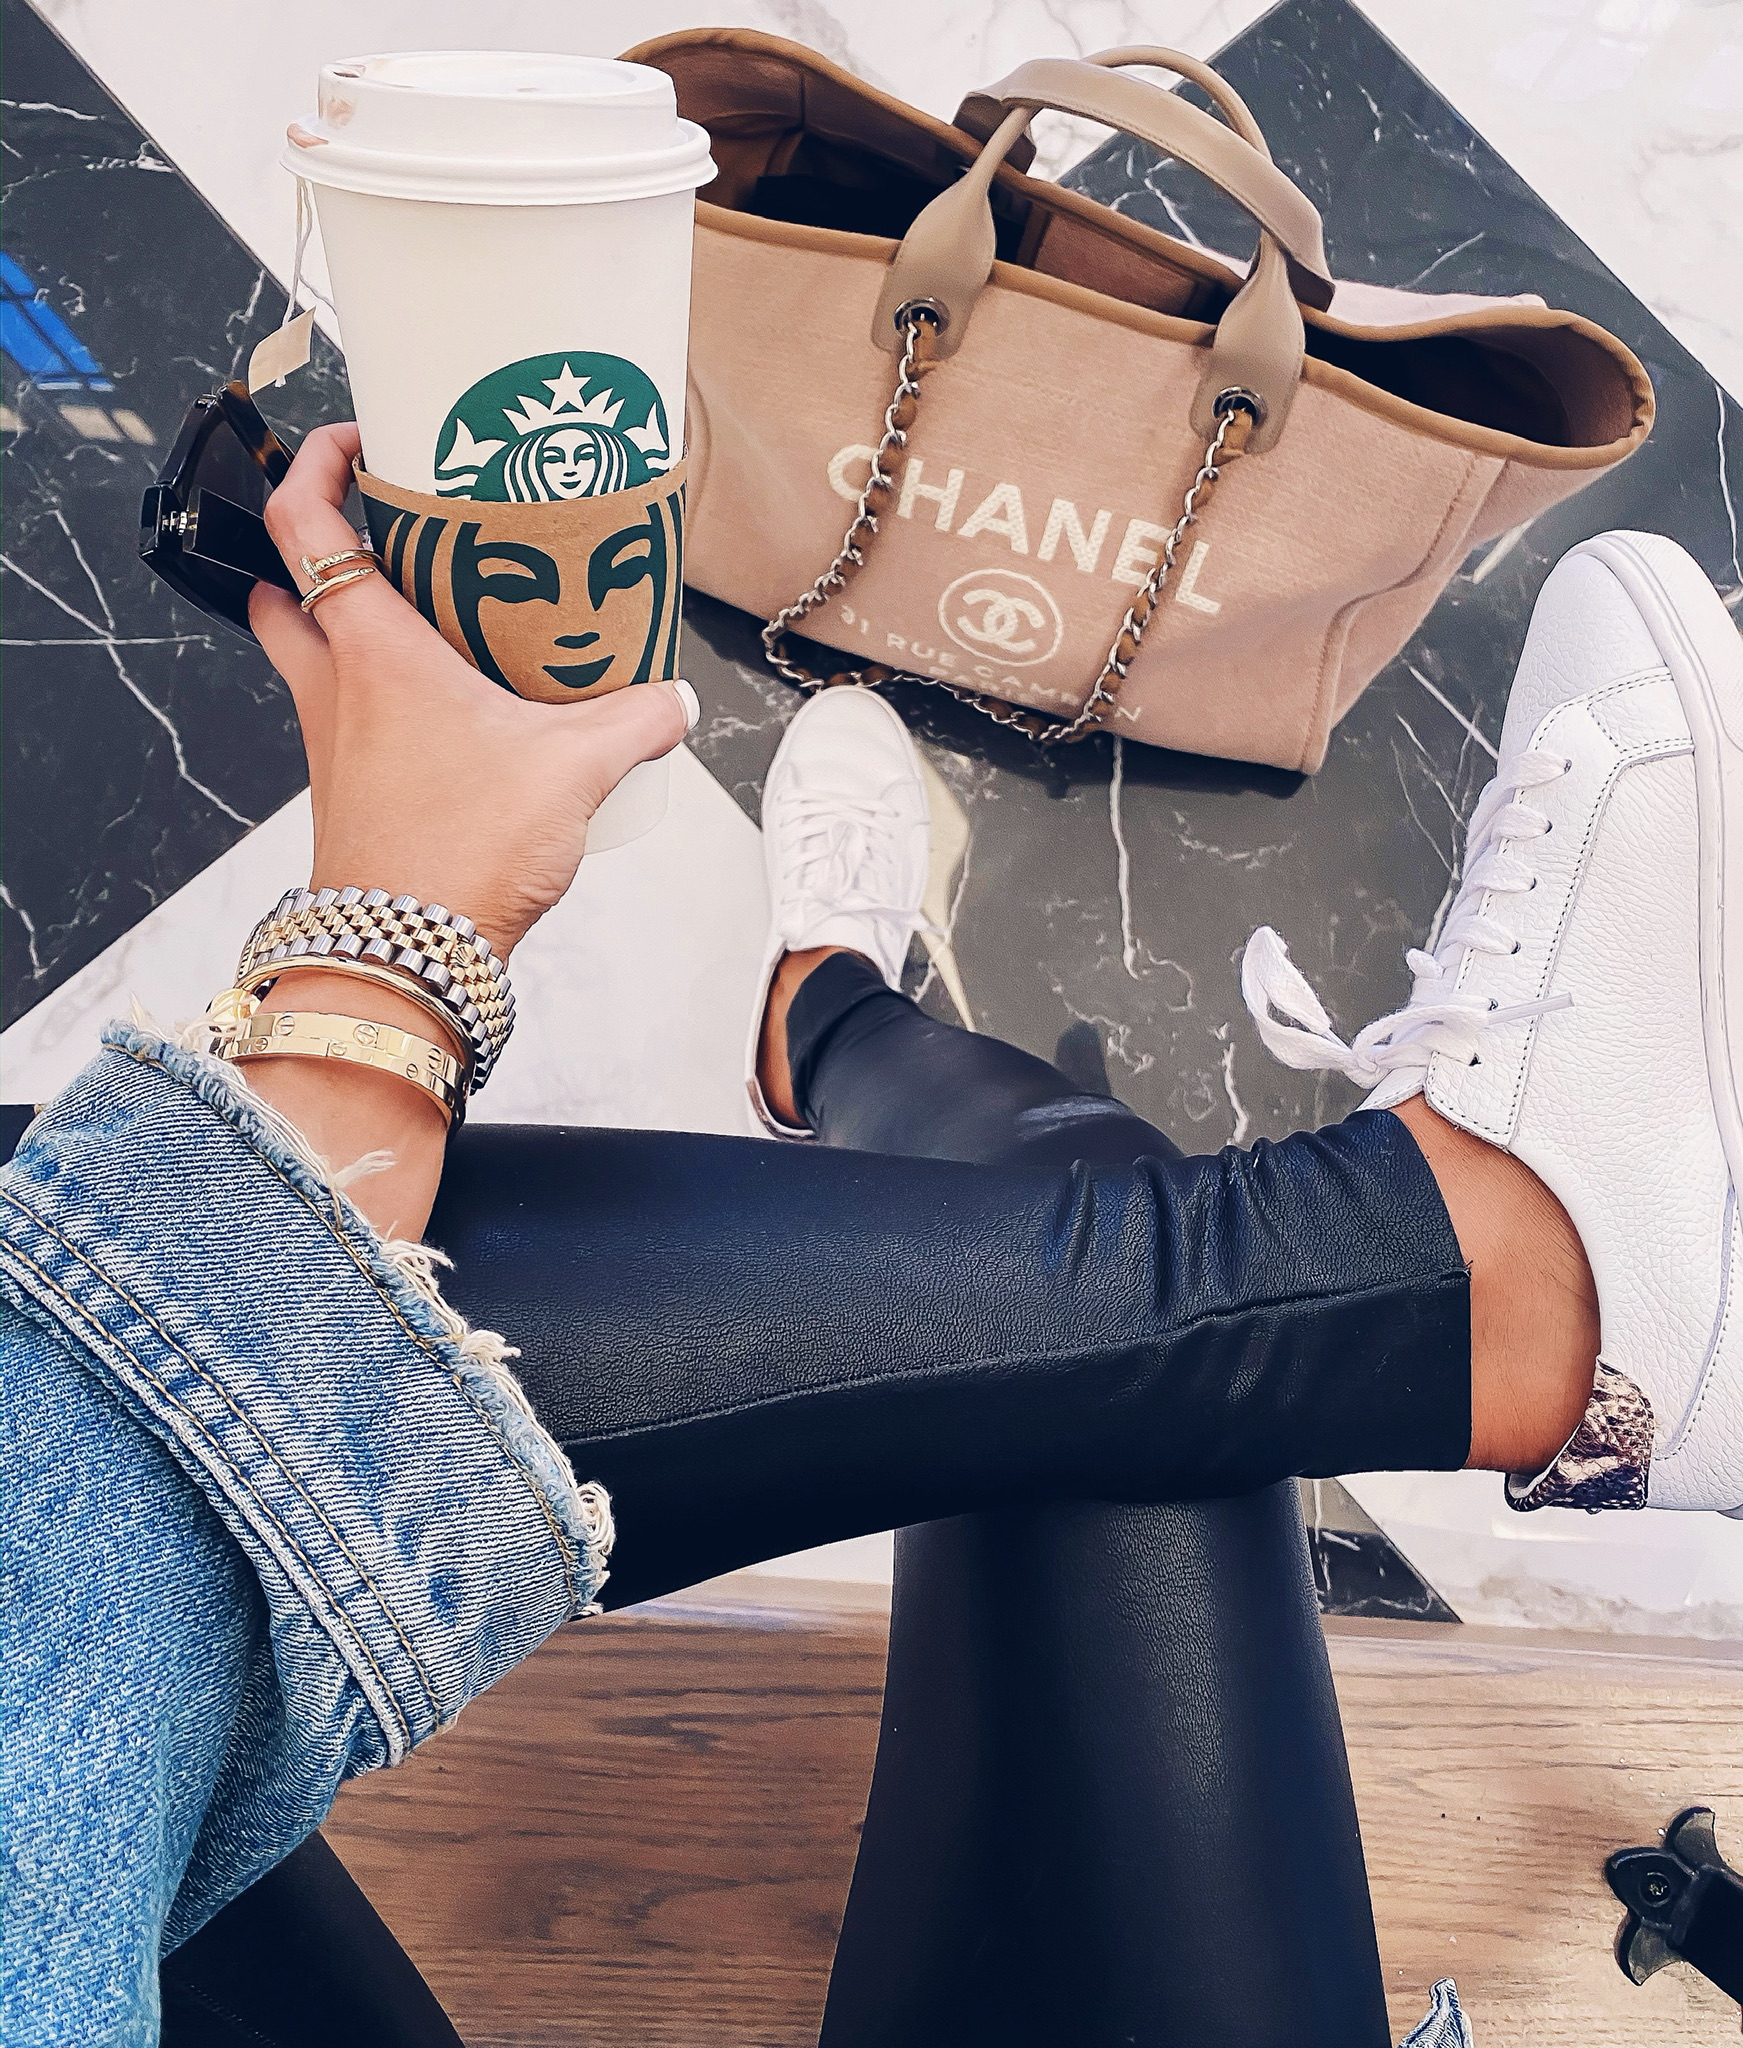 Instagram Recap by popular US fashion blog, The Sweetest Thing: image of a woman wearing a Rolex watch, Steve Madden GLOVE NATURAL SNAKE, Nordstrom Faux Leather Control Ankle Leggings COMMANDO, and Nordstrom 55mm Cat Eye Sunglasses GUCCI.